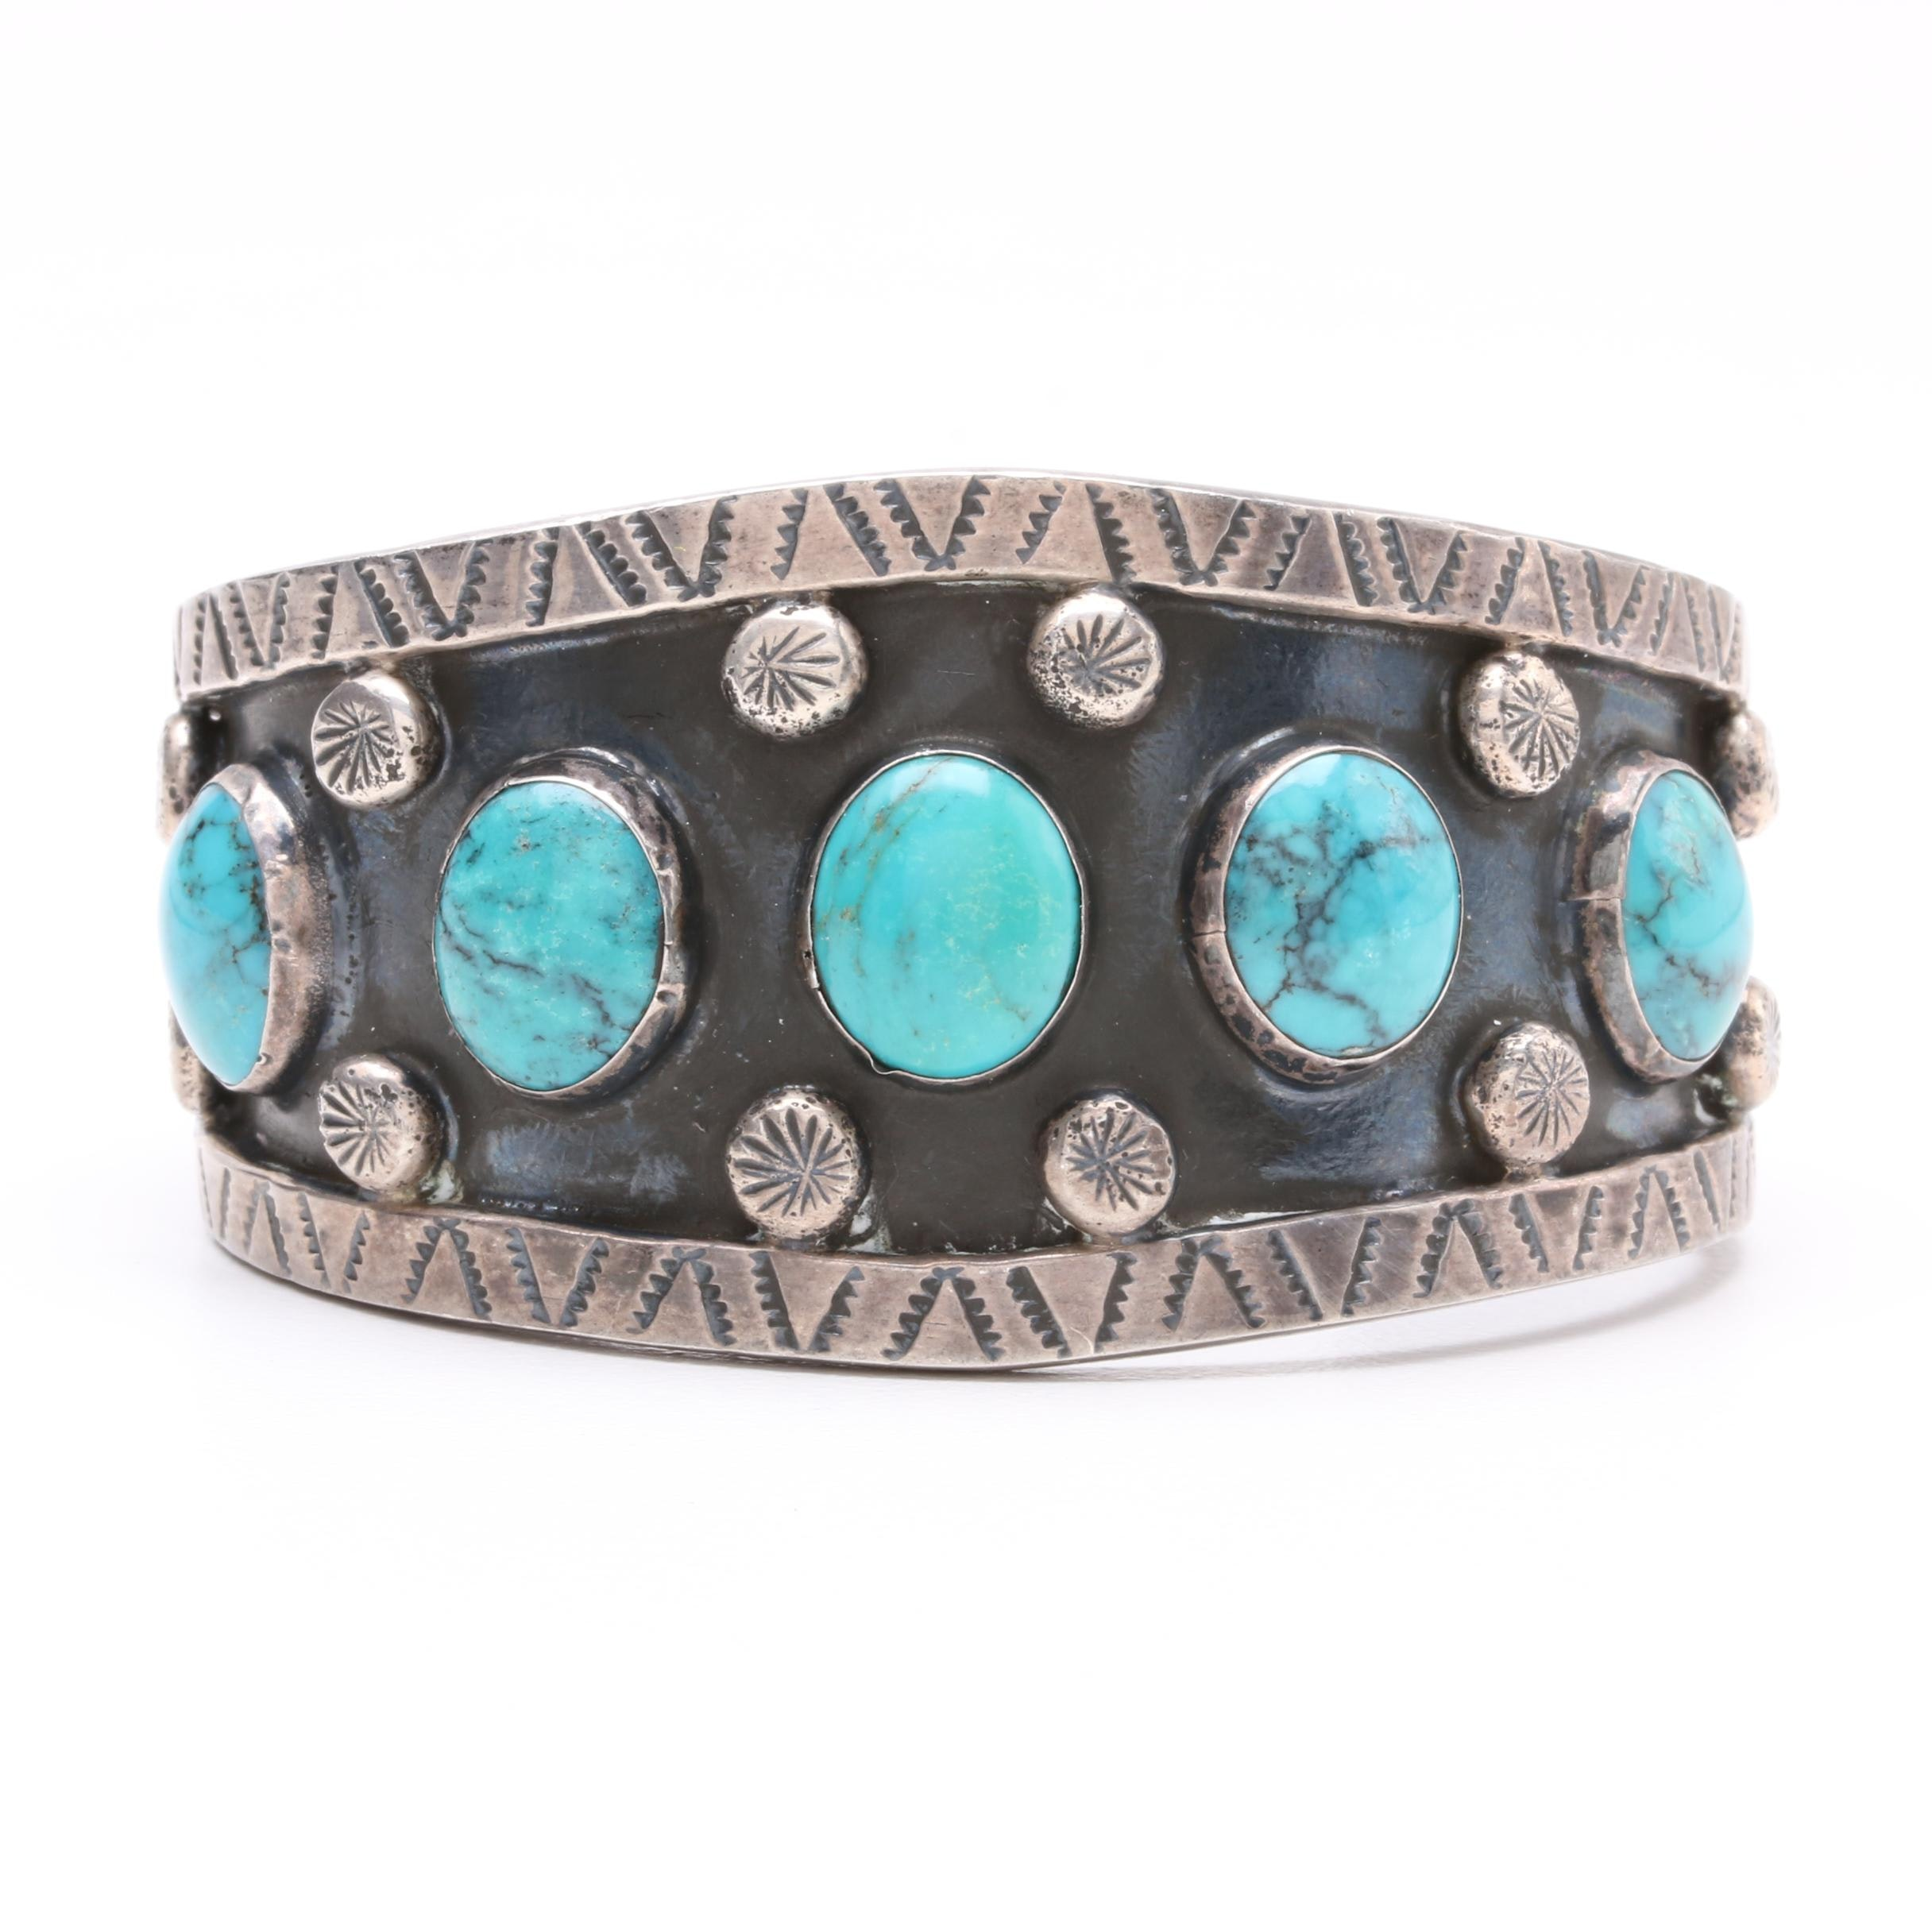 Mexican Made Sterling Silver Turquoise Cuff Bangle